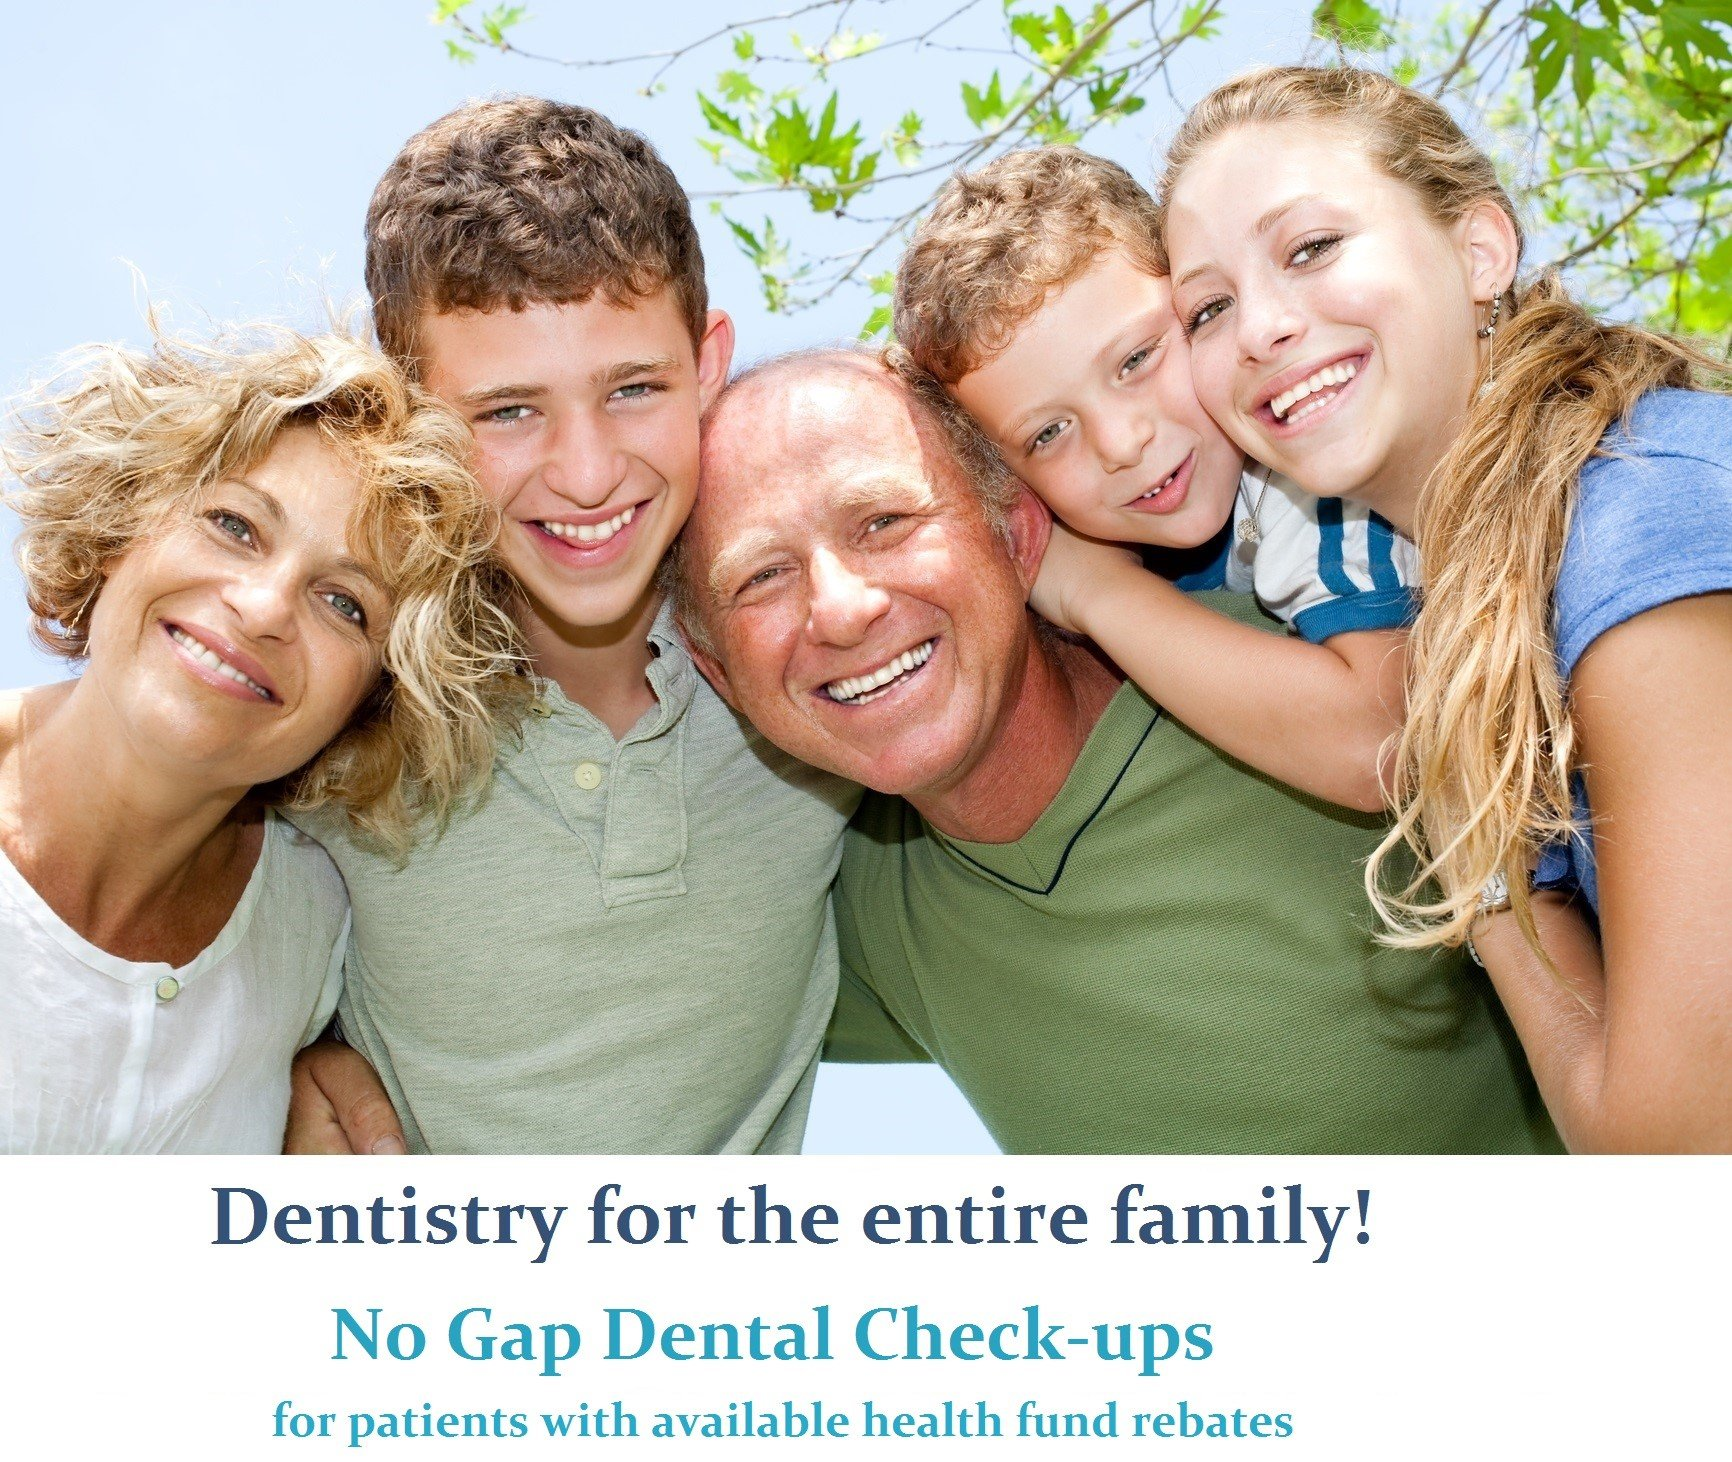 happy smiling family